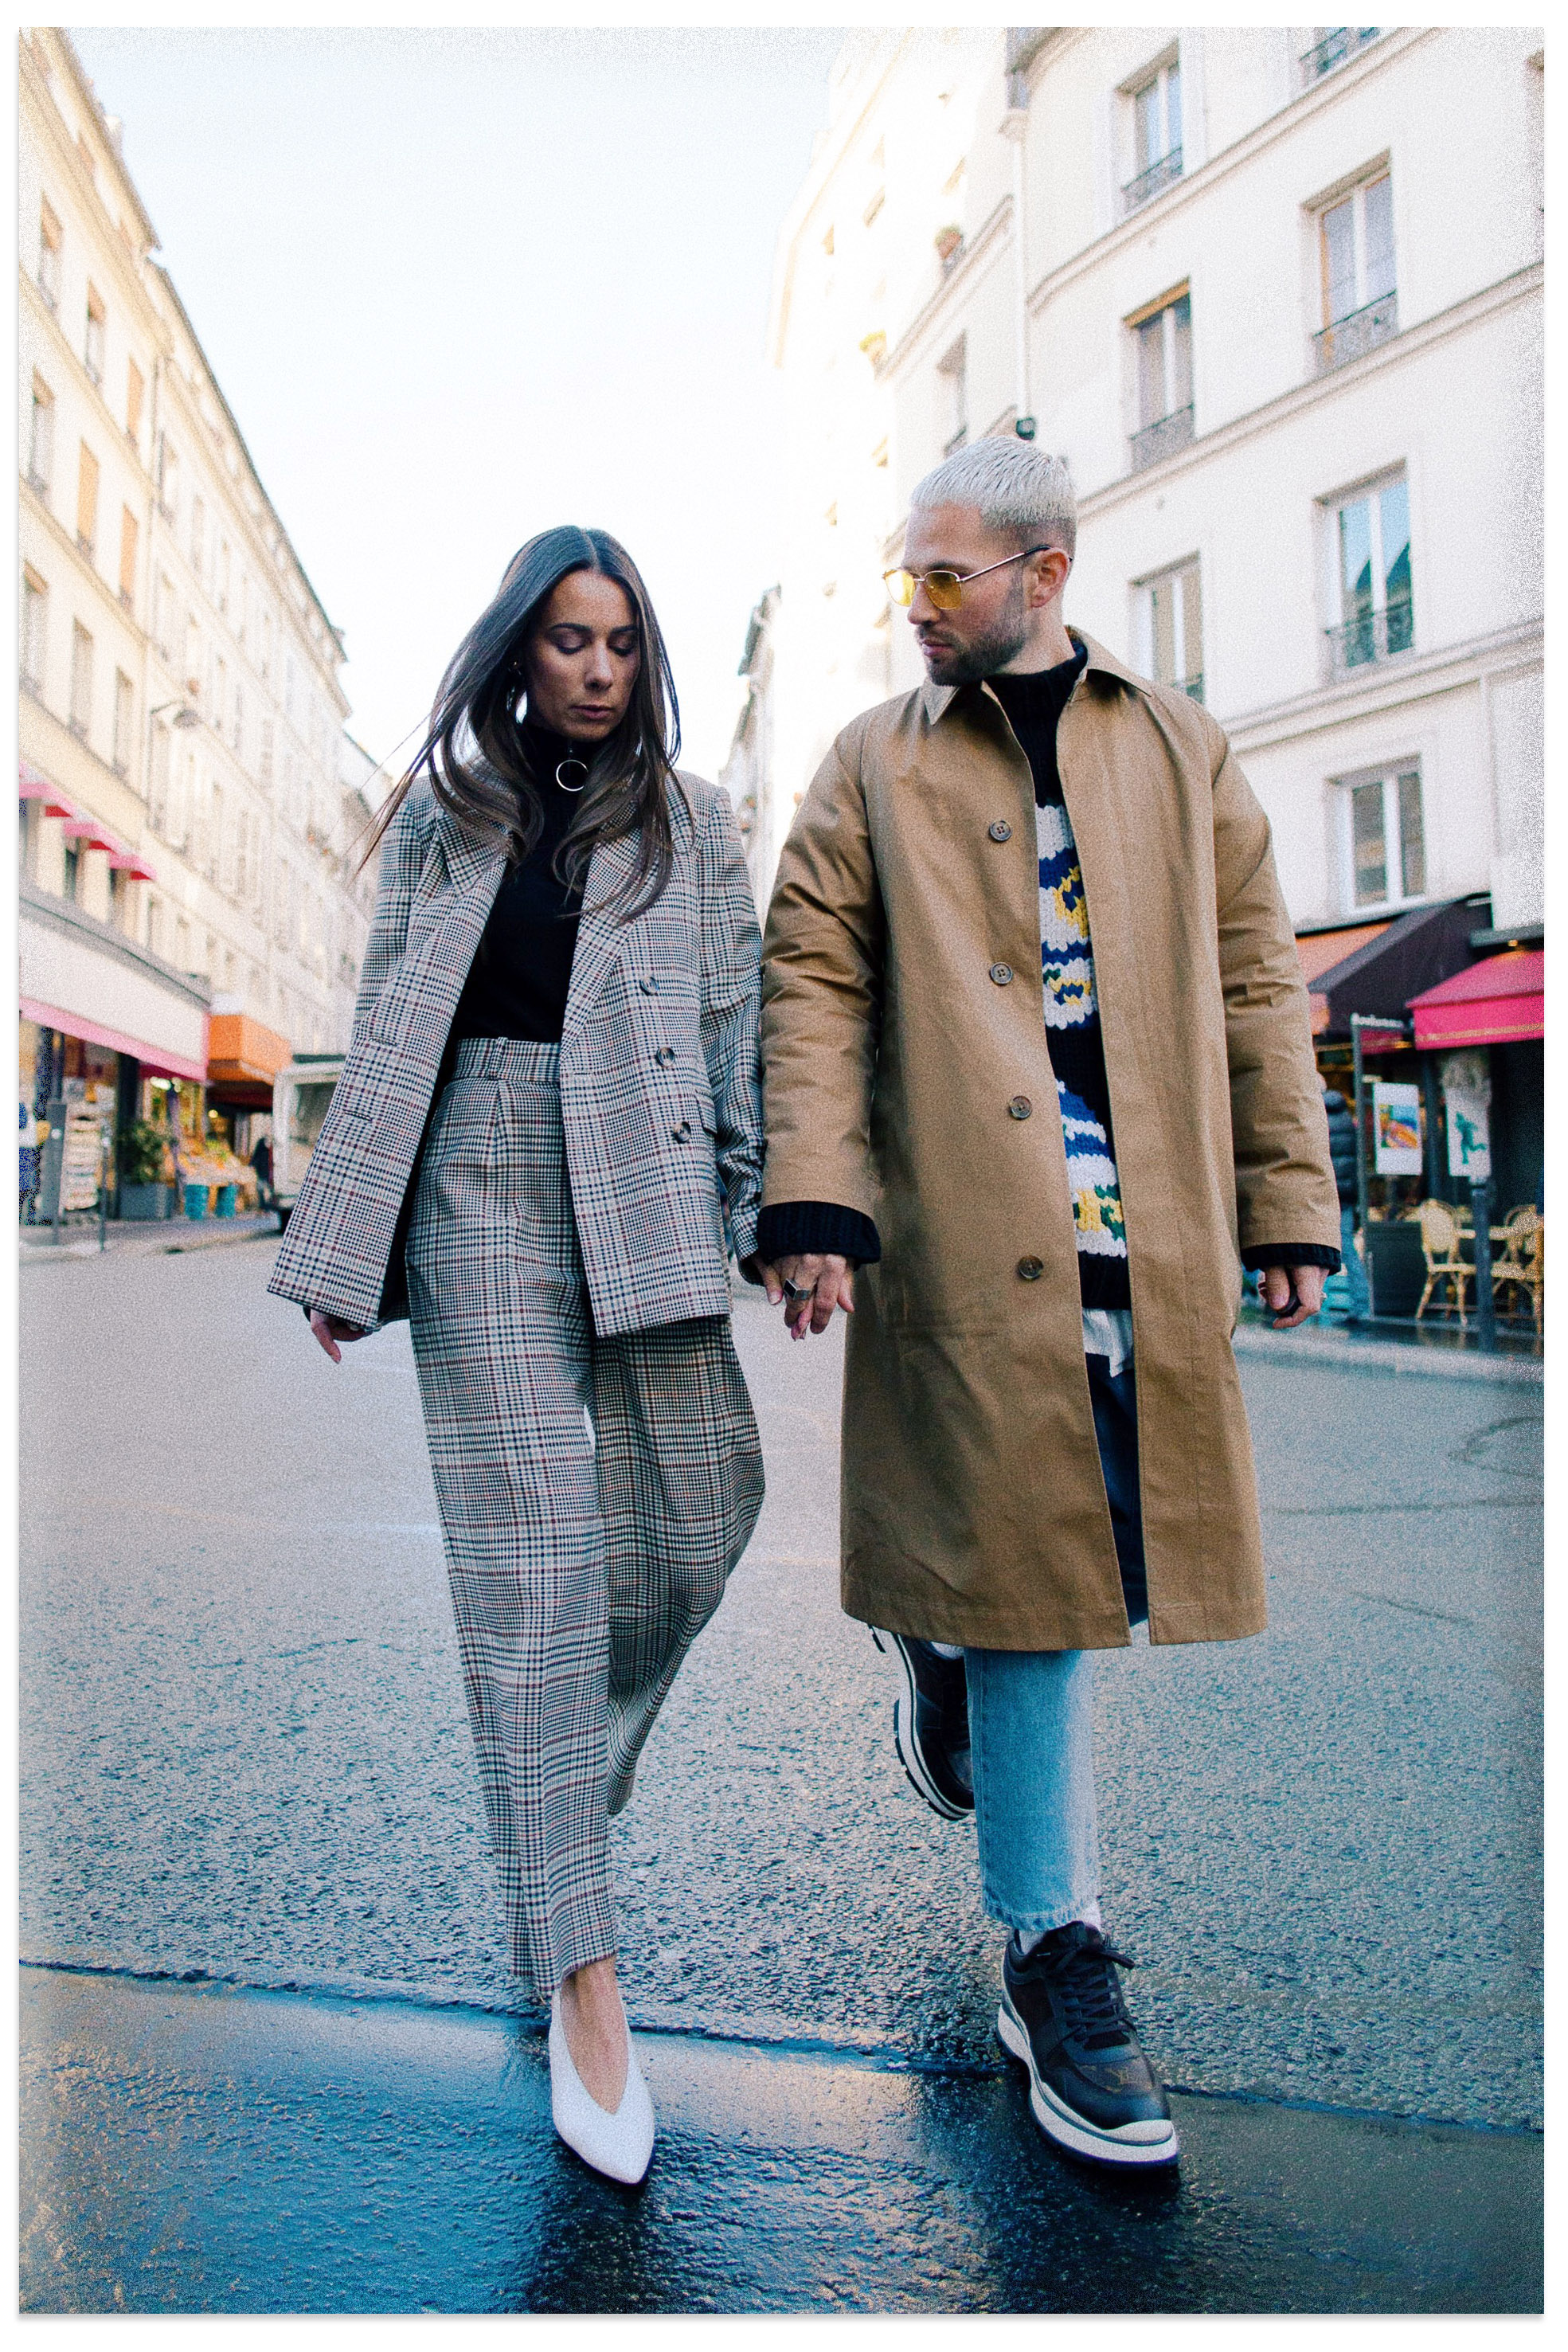 j'aime tout chez toi fashion couple blog mode ootd outfit and other stories etudes studios uniqlo u